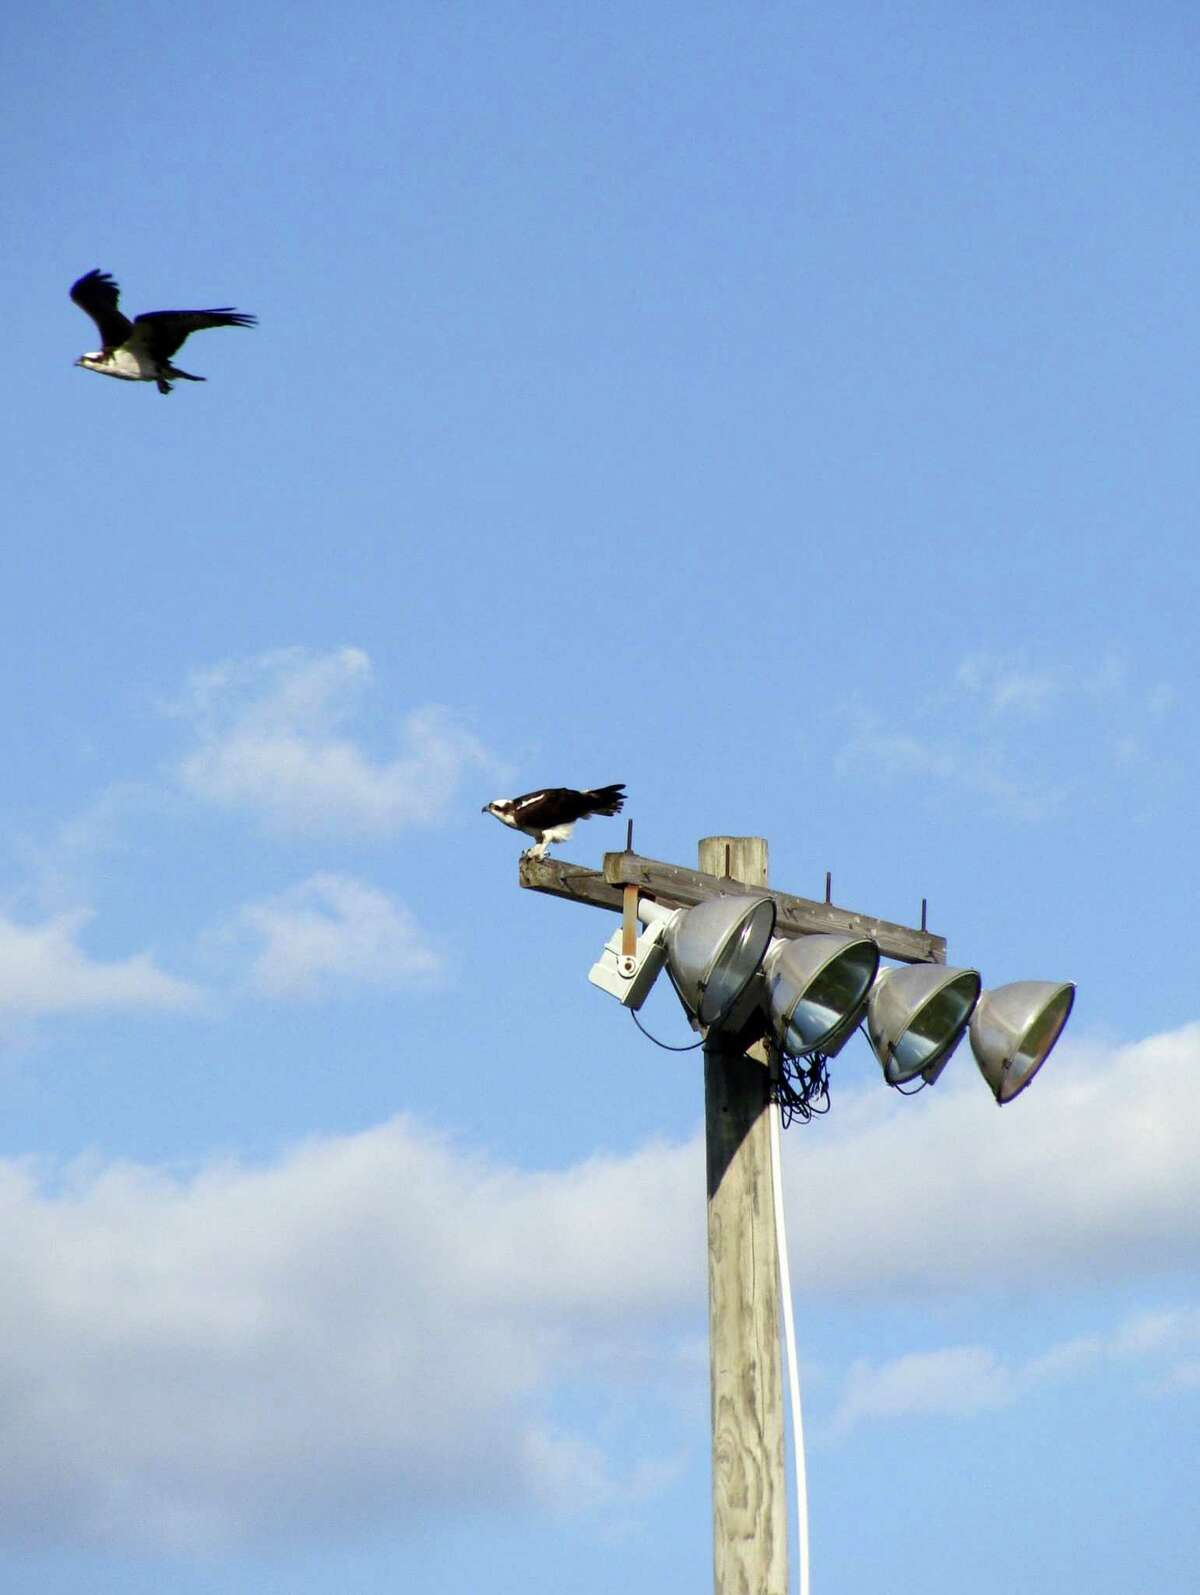 Ospreys alight on one of the light towers at the South Pine Creek recreation complex, near the tower where they have built a nest this spring.